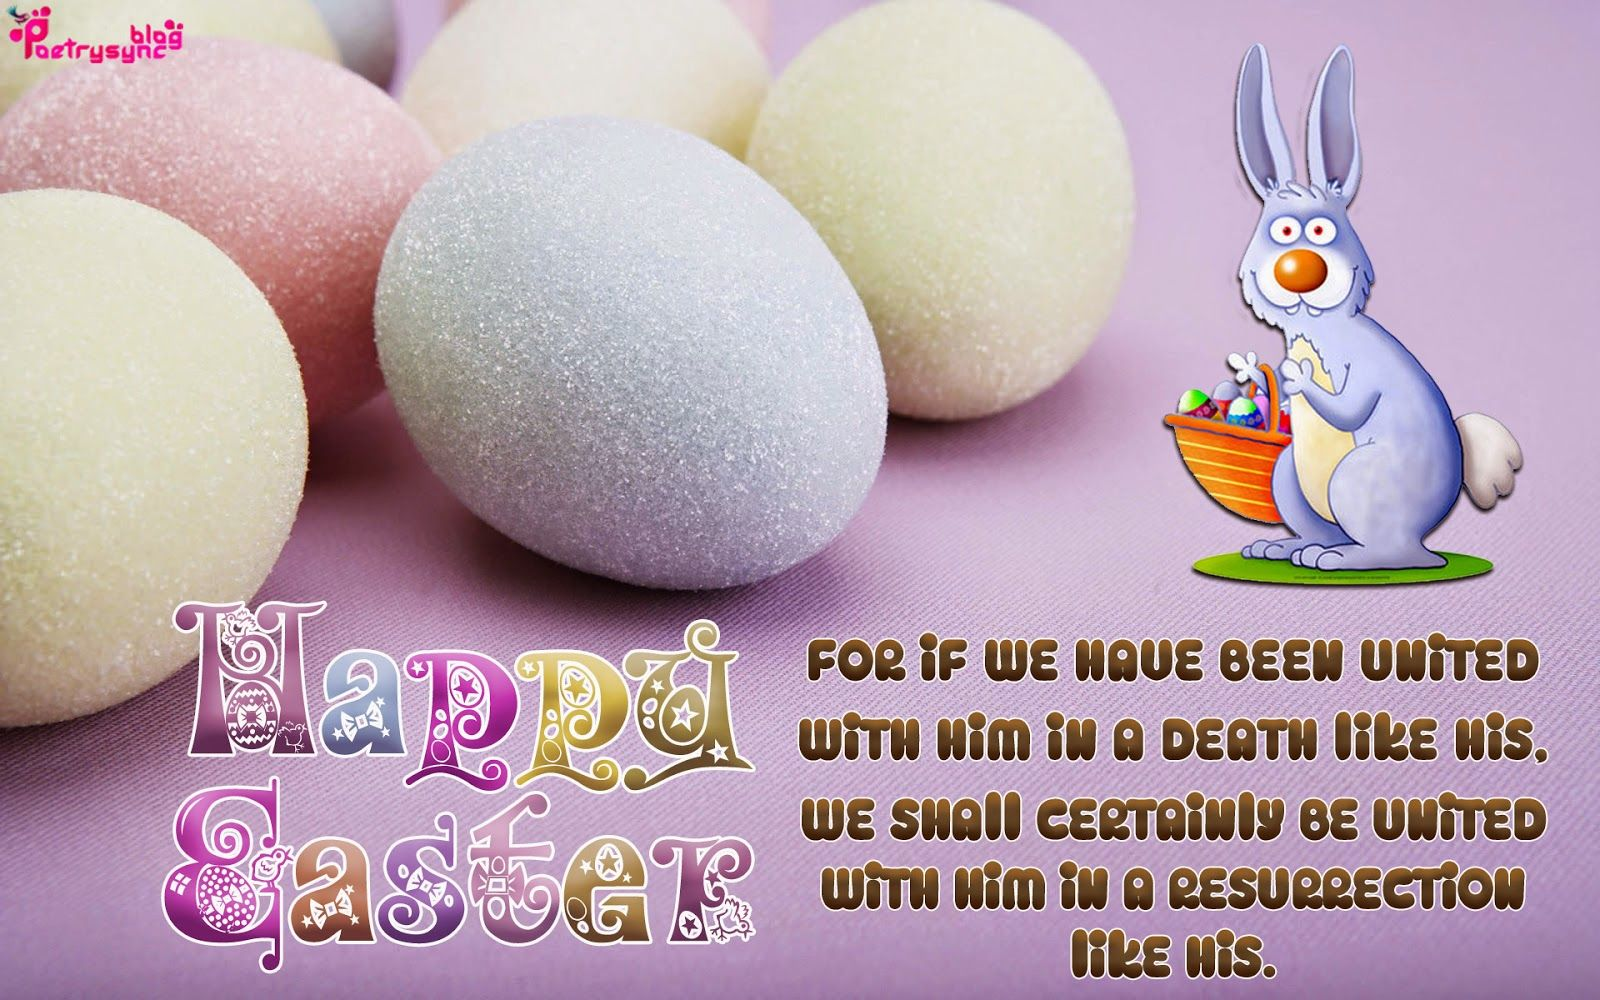 Happy easter sunday wishes quote wallpaper 1920 1200g 1600 explore happy easter wishes happy easter sunday and more kristyandbryce Image collections